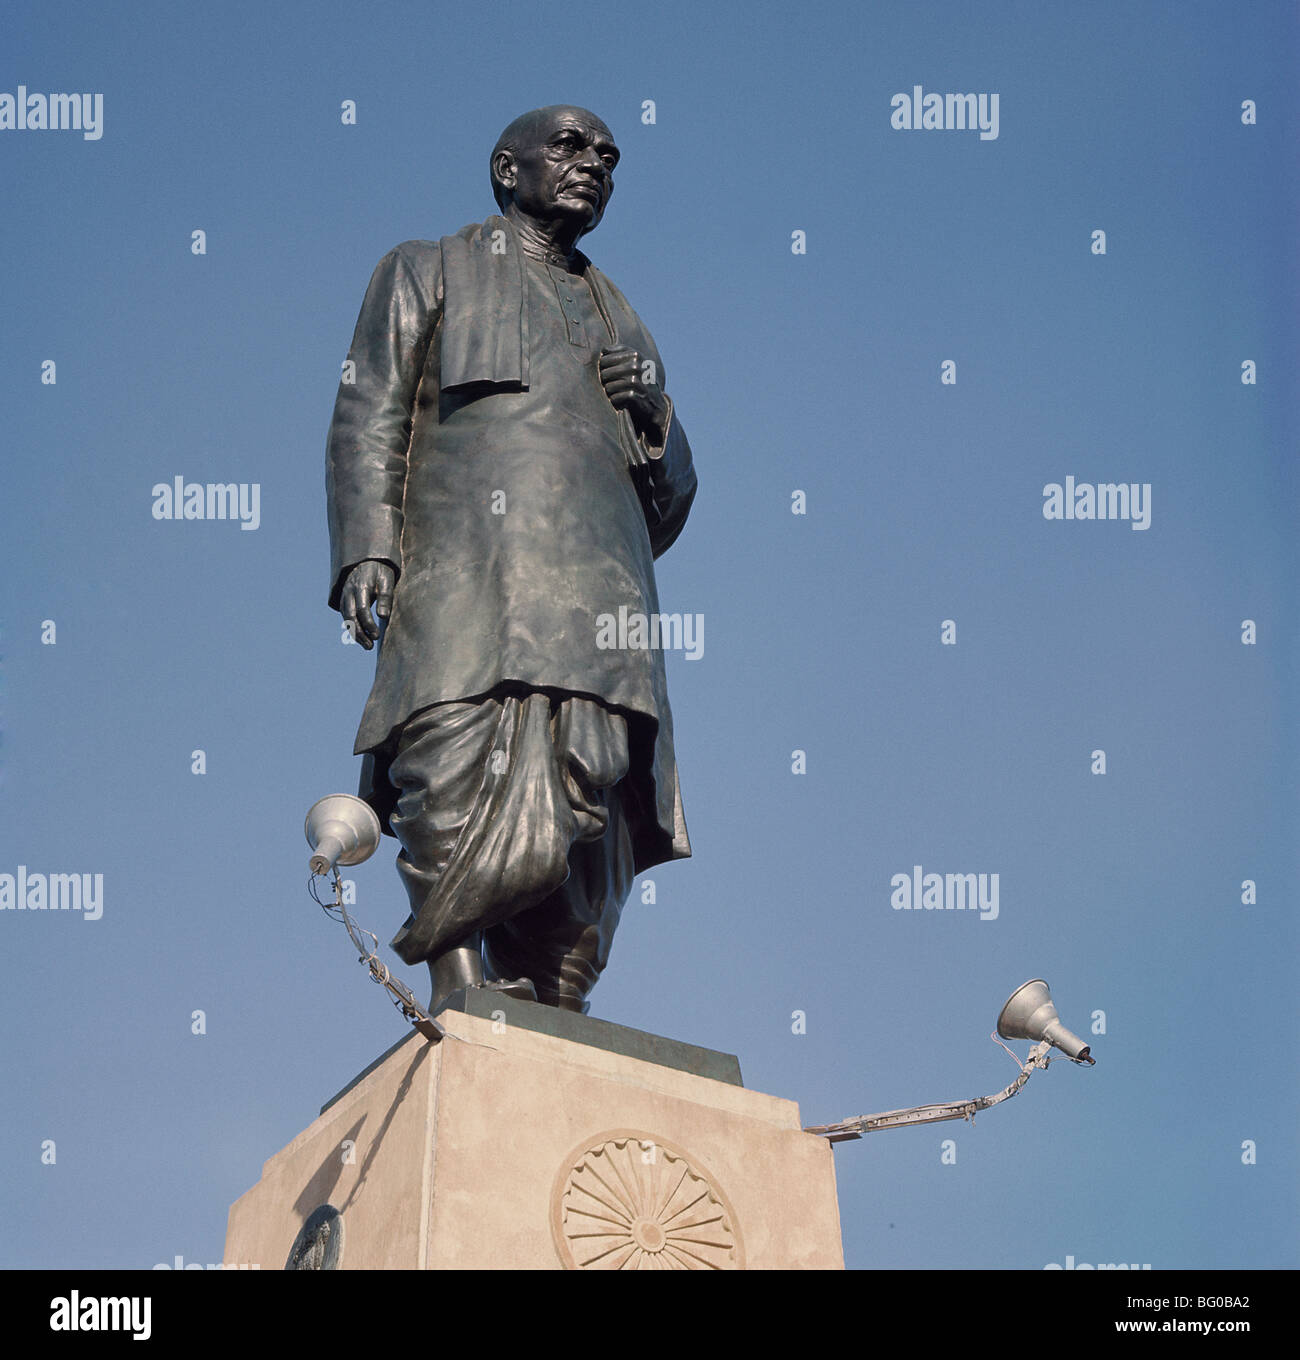 Monument to Vallabhbhai Patel, a leader who played a major role in India's struggle for independence, New Delhi, - Stock Image